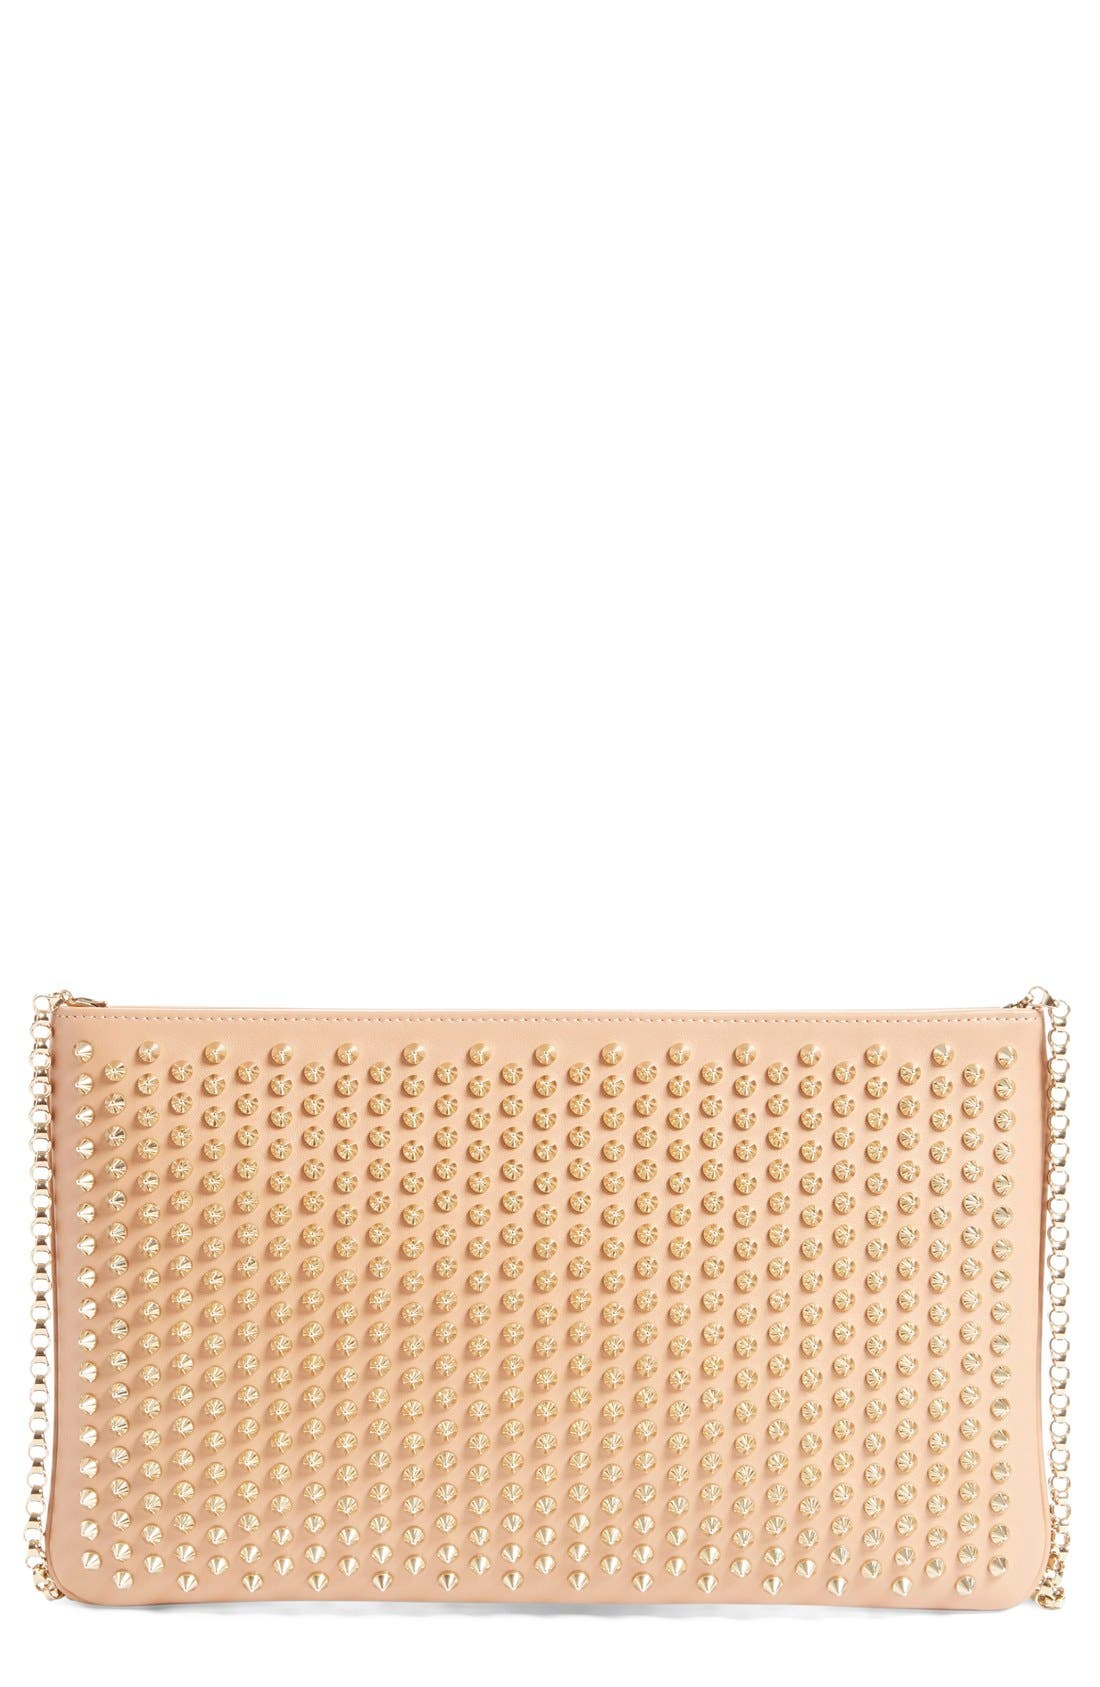 Christian Louboutin 'Loubiposh' Spiked Calfskin Shoulder Bag